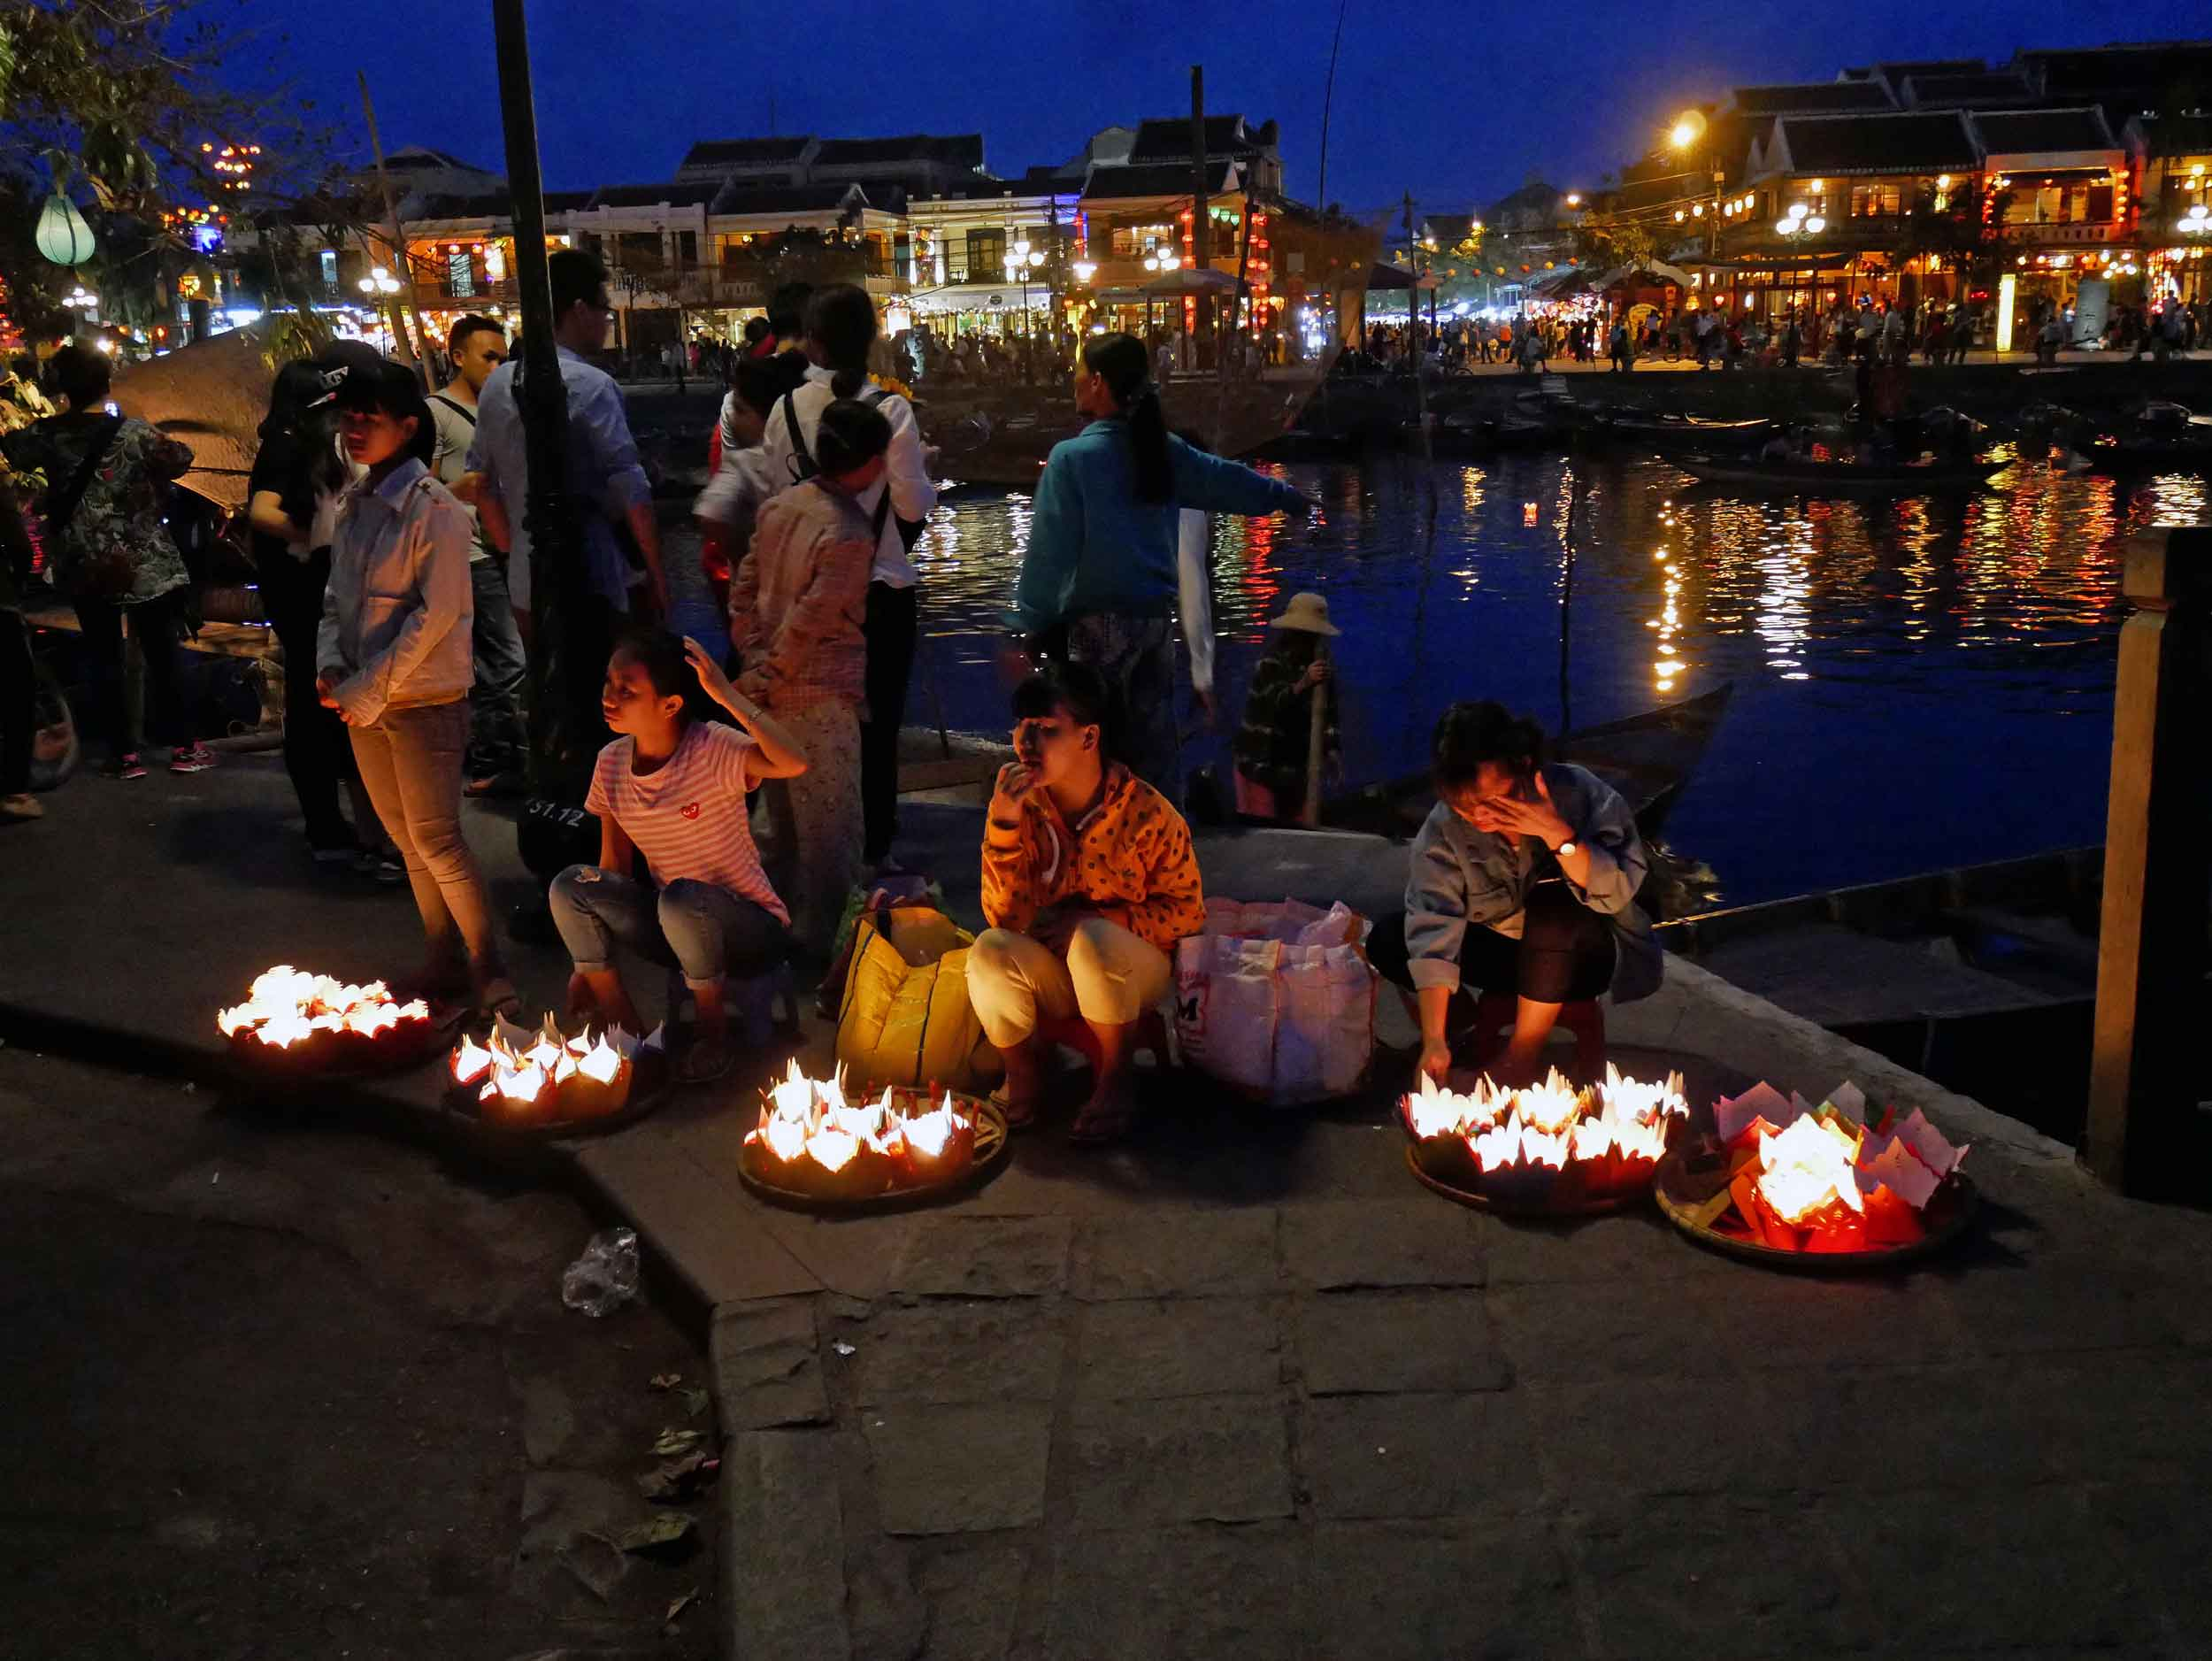 As night fell, women and children sell floating candles that can be set in the river to drift away with your wishes.